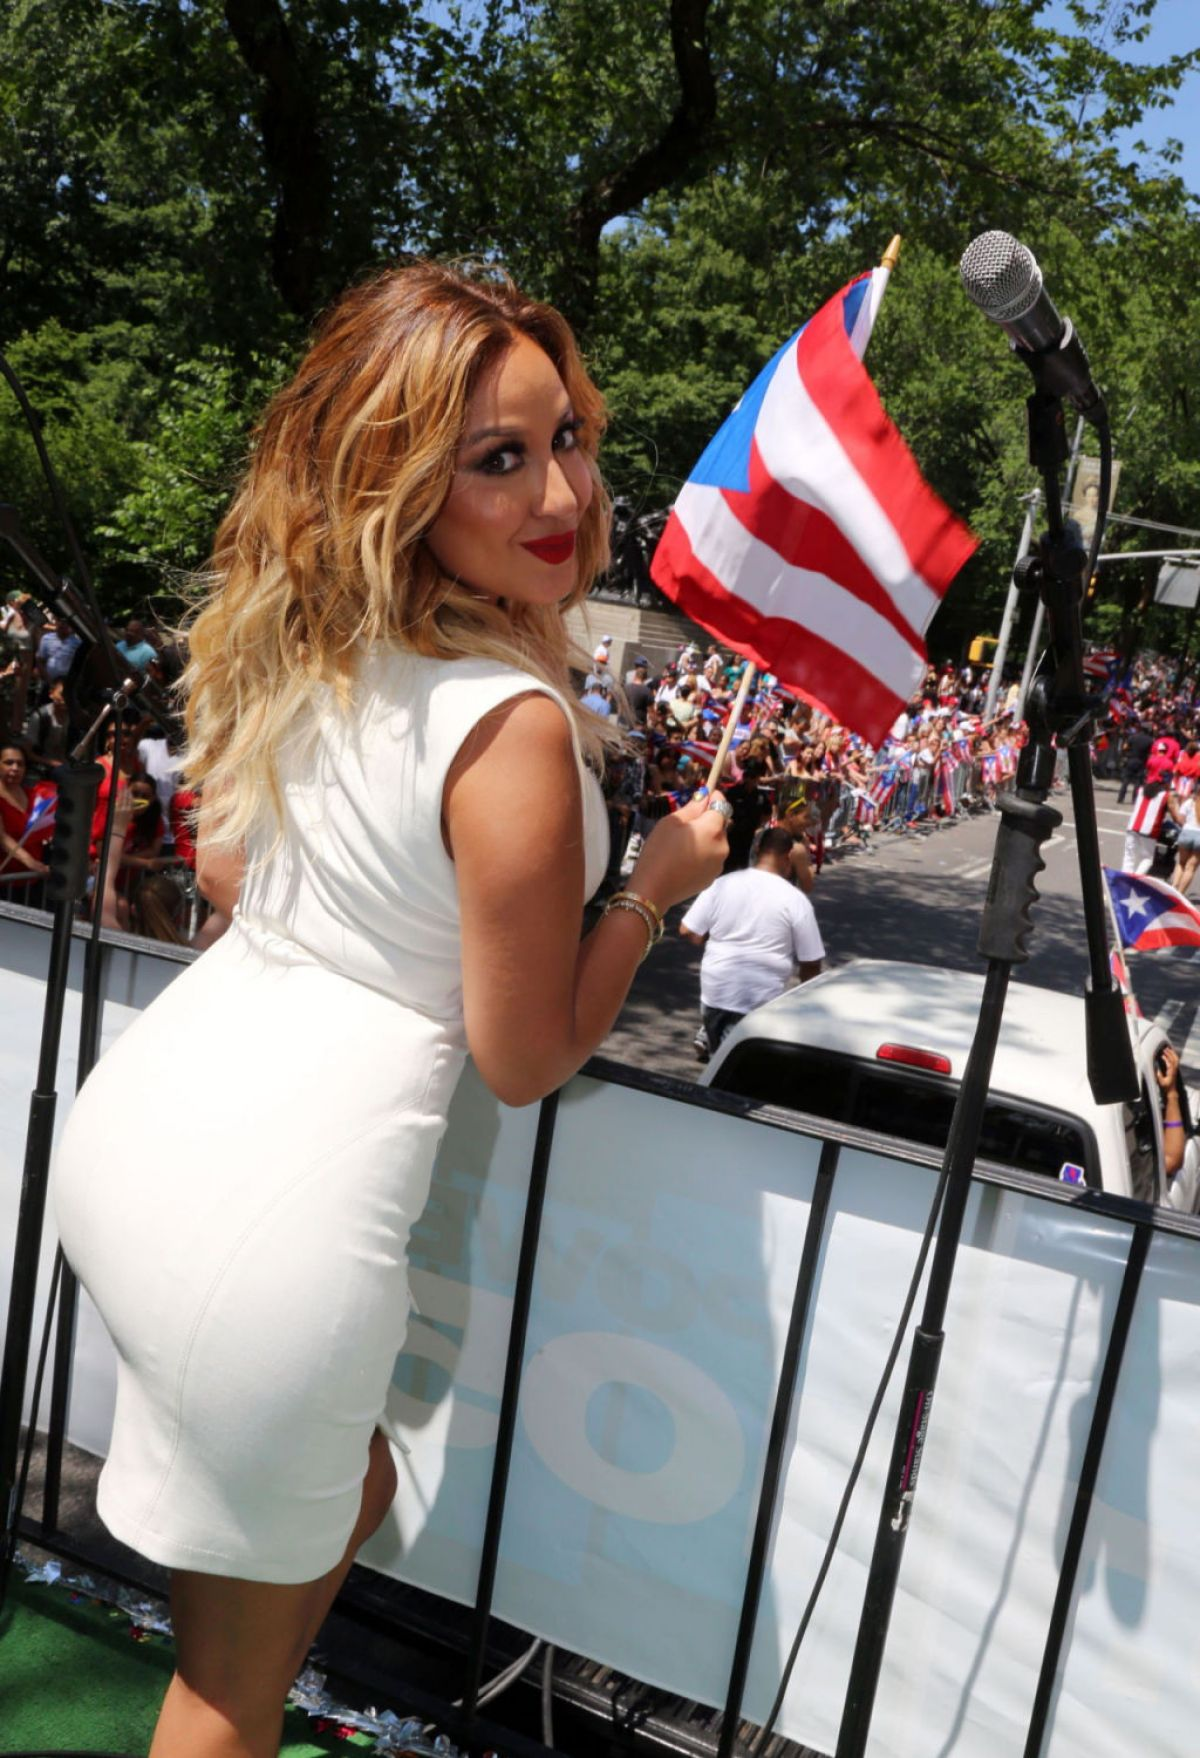 Puerto rican girl naked with flag, davalos naked ass